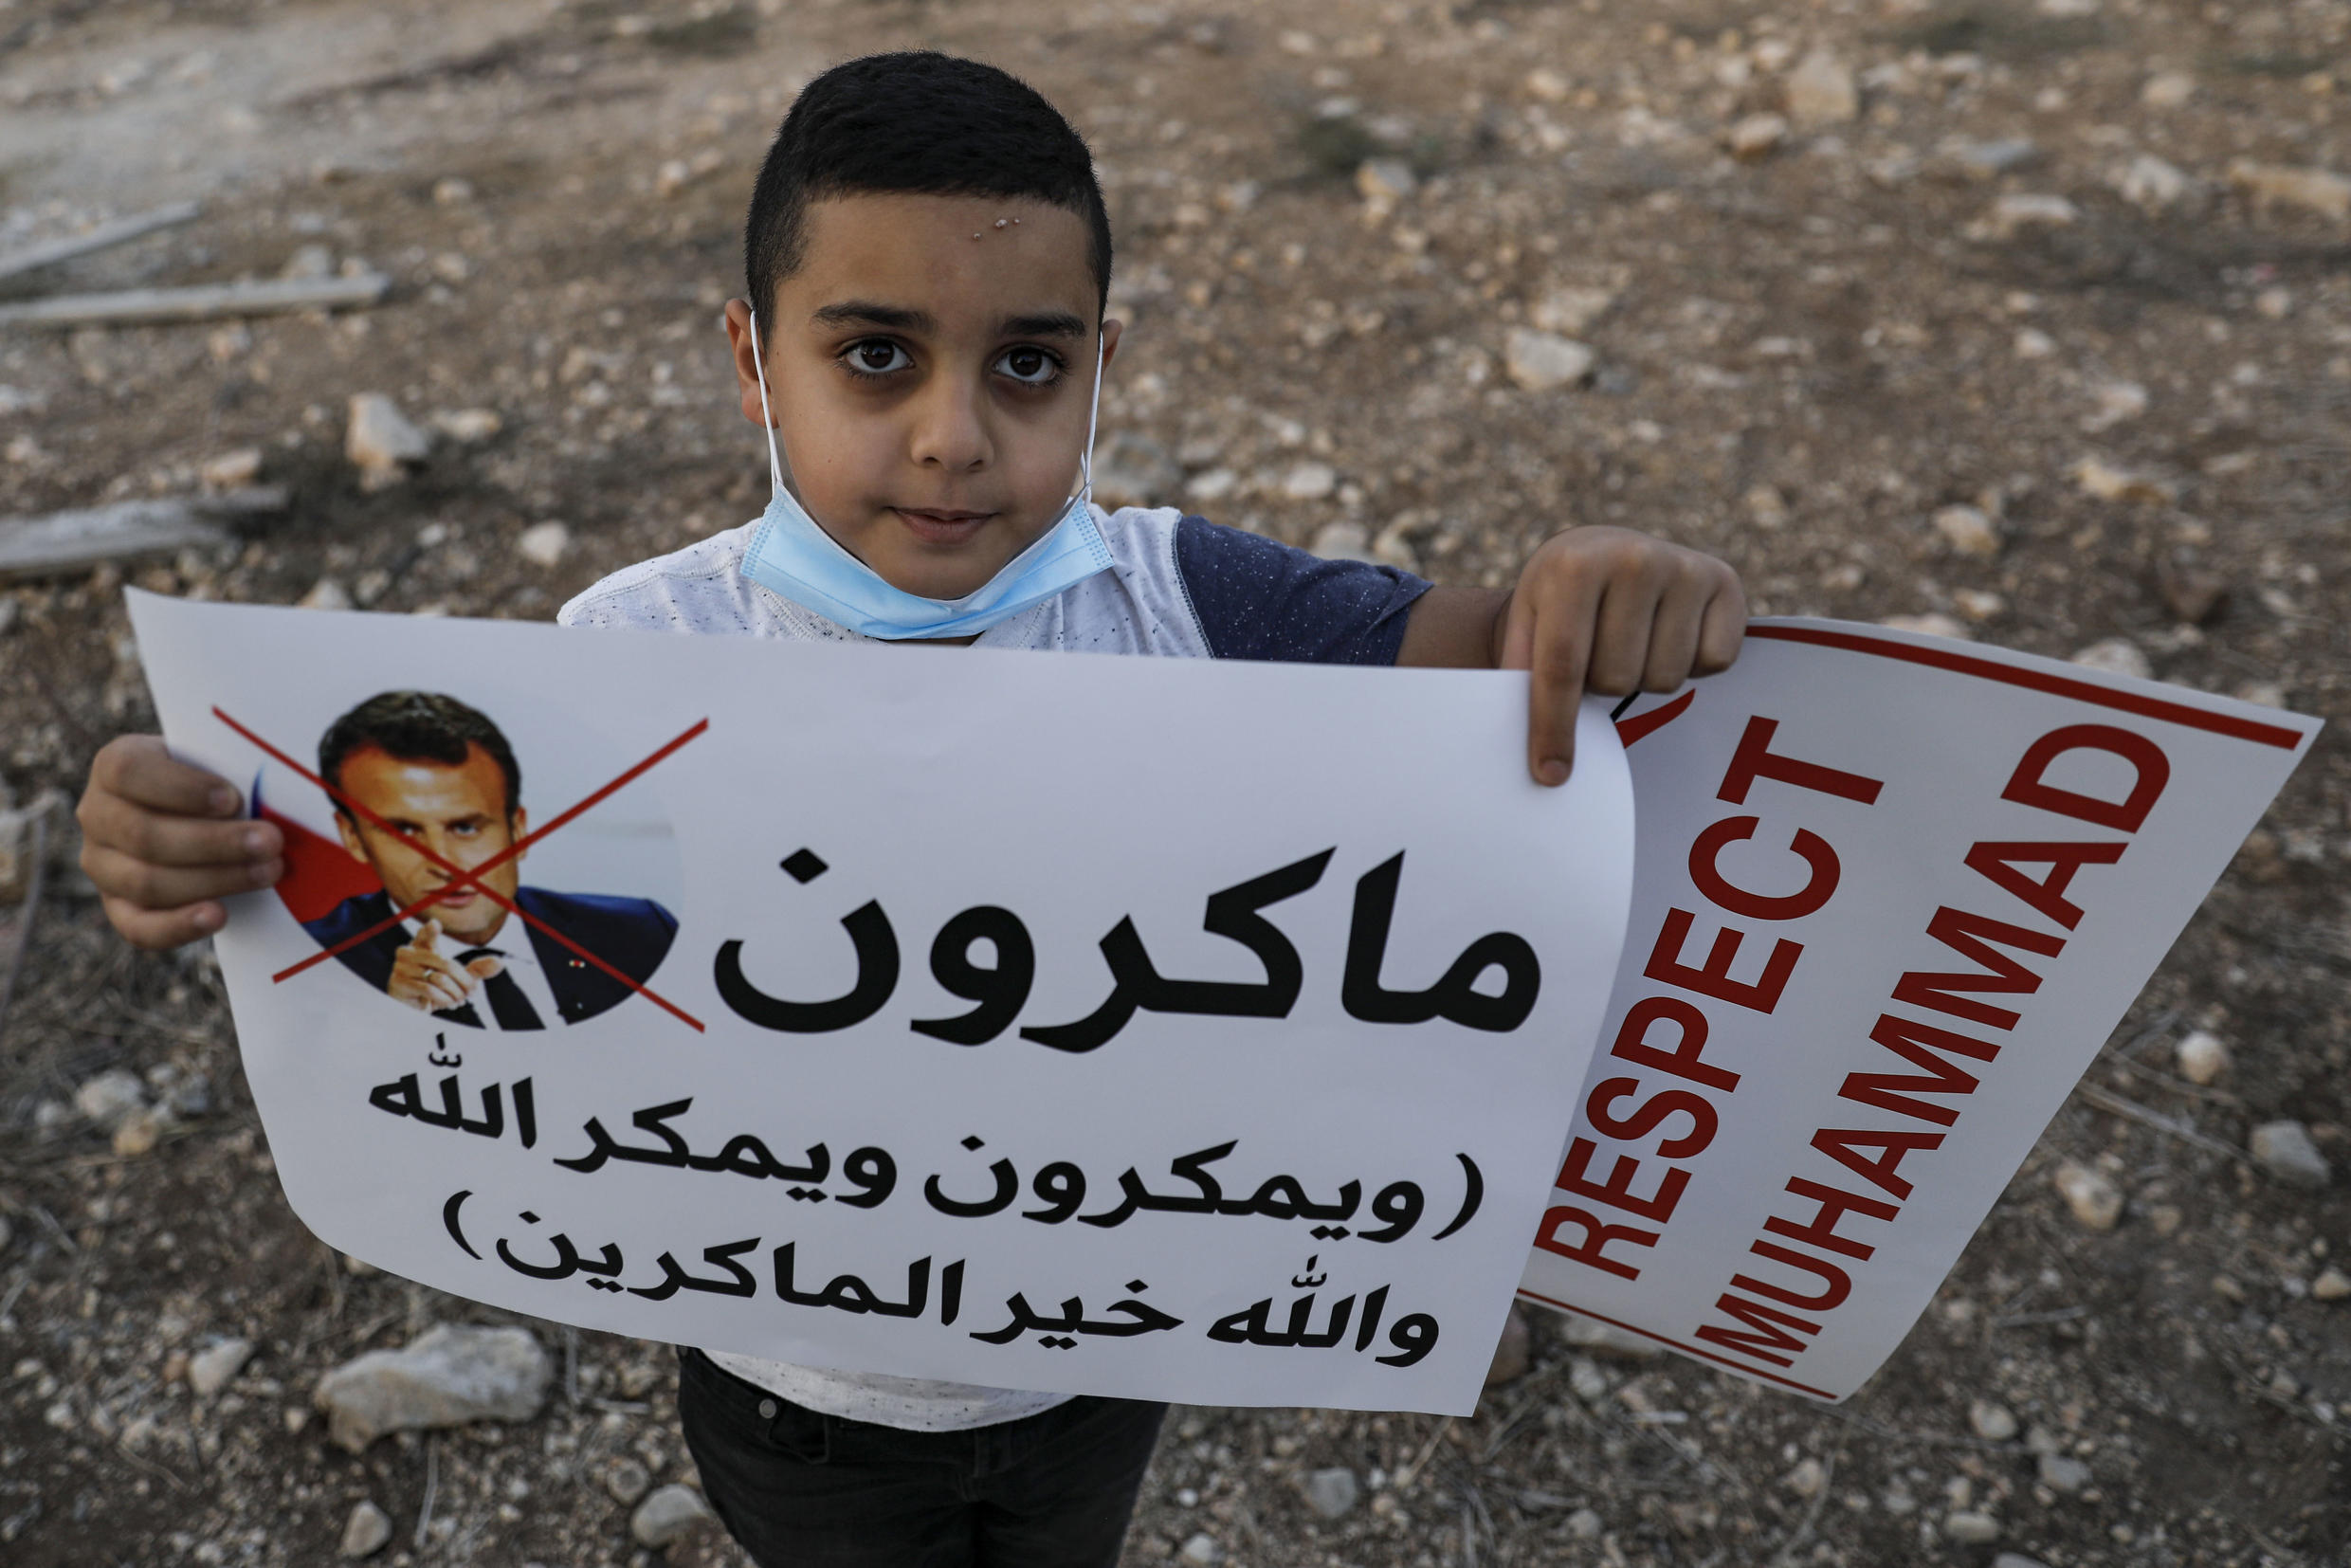 An Arab Israeli Muslim boy holds up a sign during a rally protesting against the comments of French President Emmanuel Macron over Prophet Mohammed cartoons, in the Arab town of Umm-Al Fahem in Northen Israel on October 25, 2020.